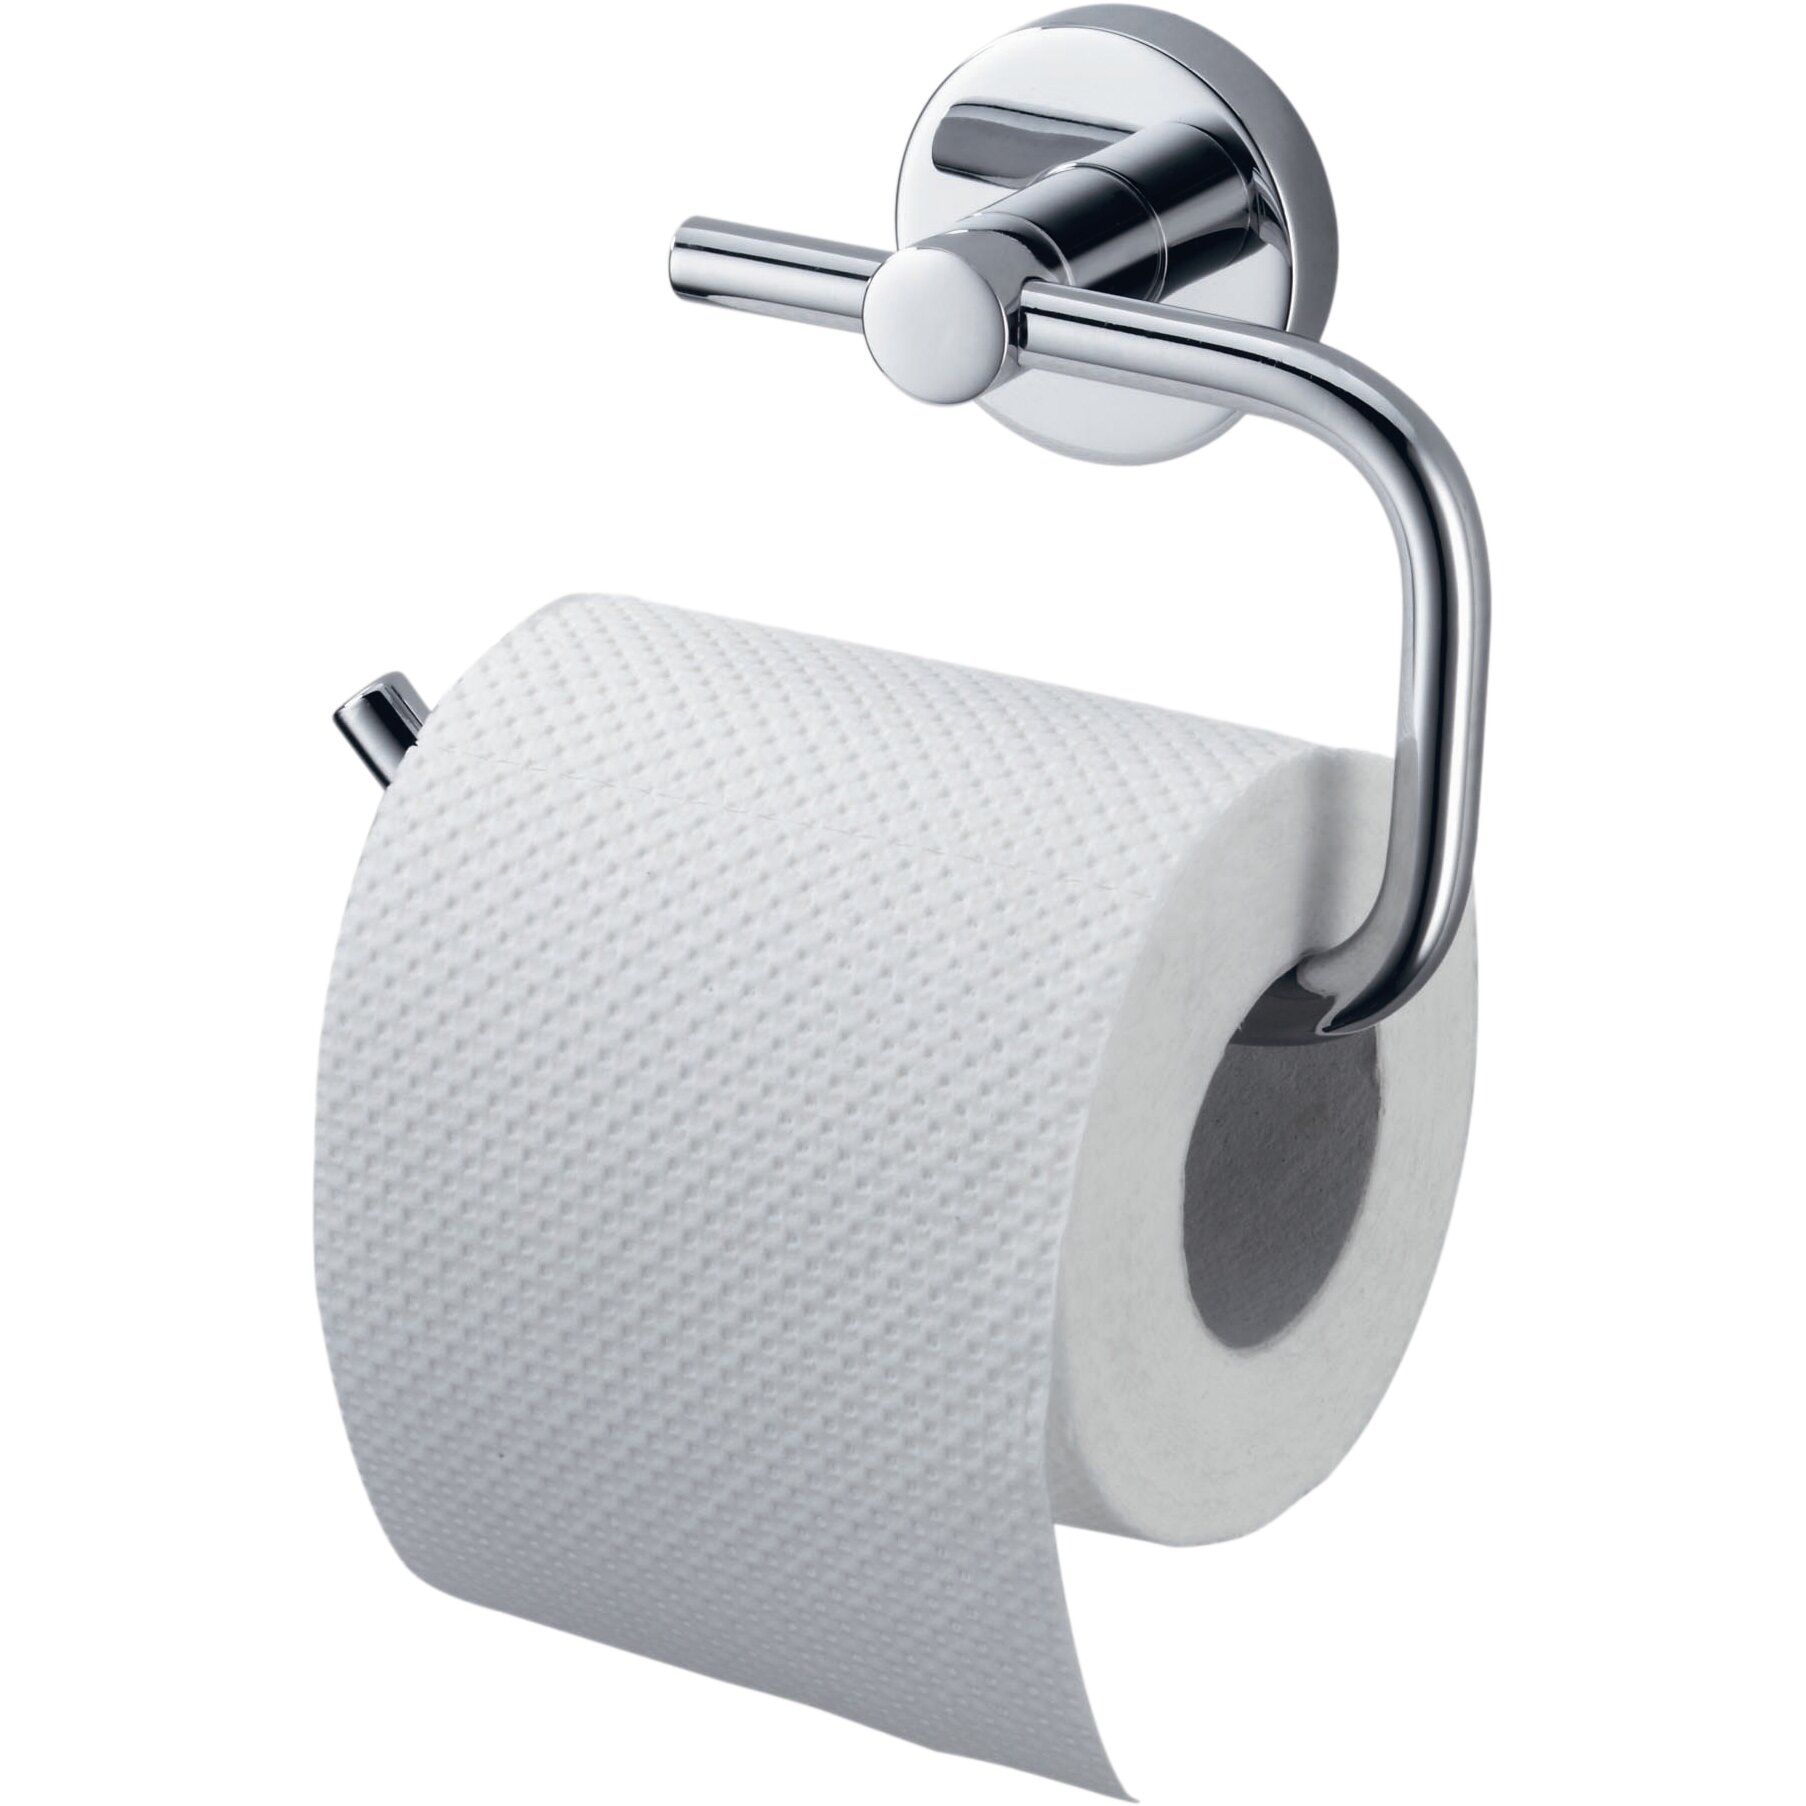 Haceka kosmos wall mounted toilet roll holder in chrome Glass toilet roll holder